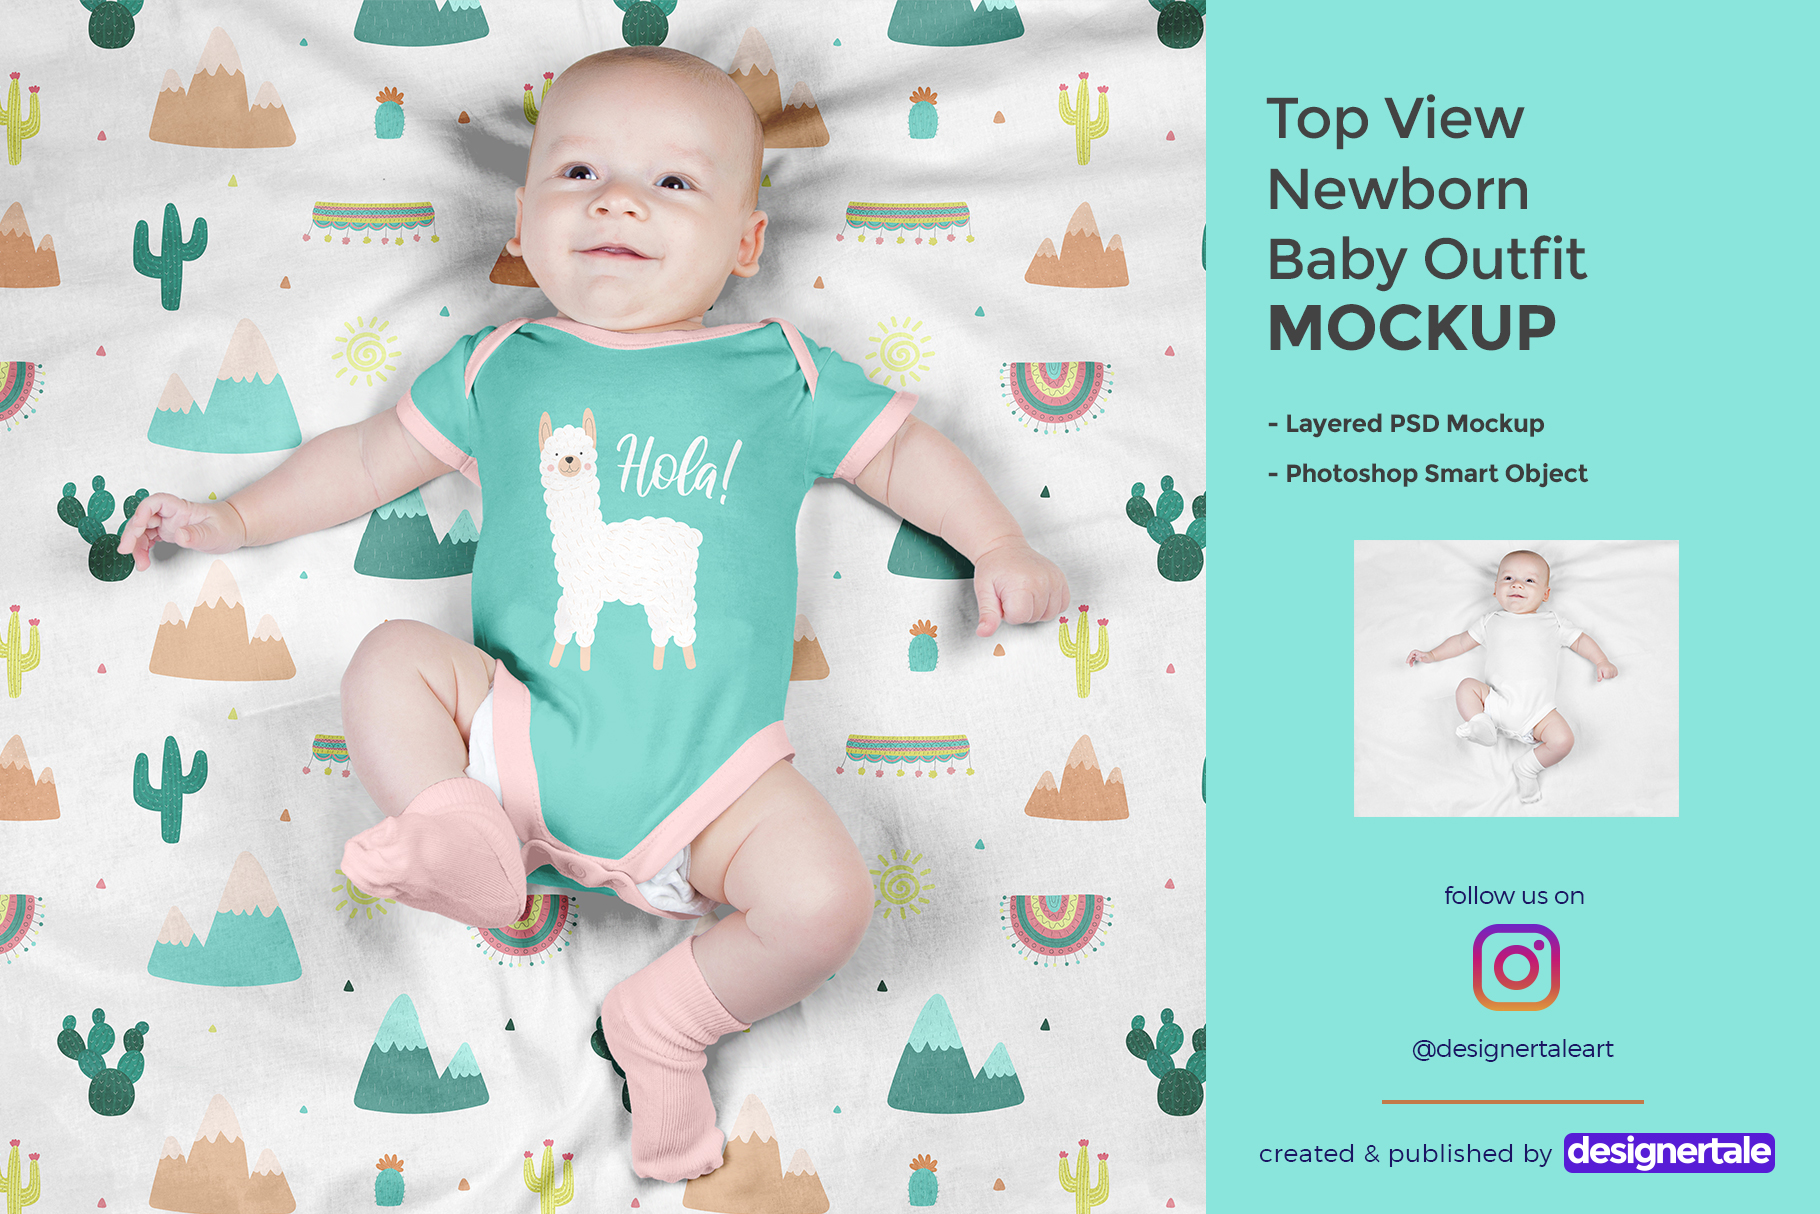 top view newborn baby outfit mockup